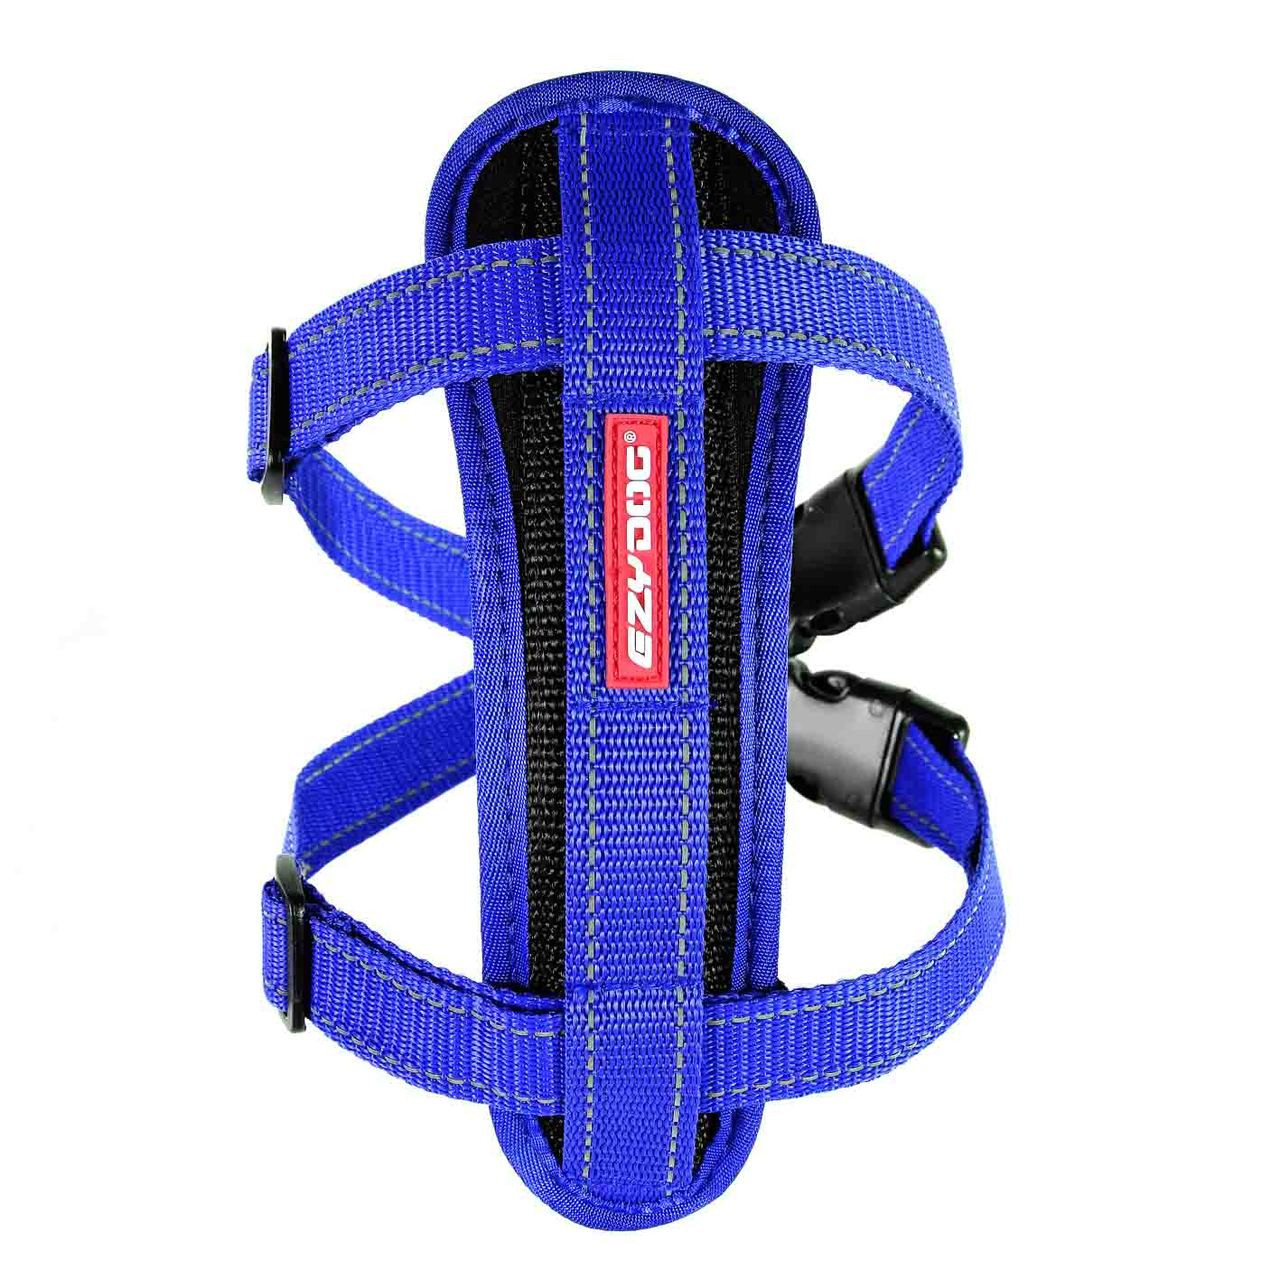 chest plate dog harness blue__59696.1491864331?c=2 dog control harness easy walk dog harness chest plate harness dog harness at eliteediting.co